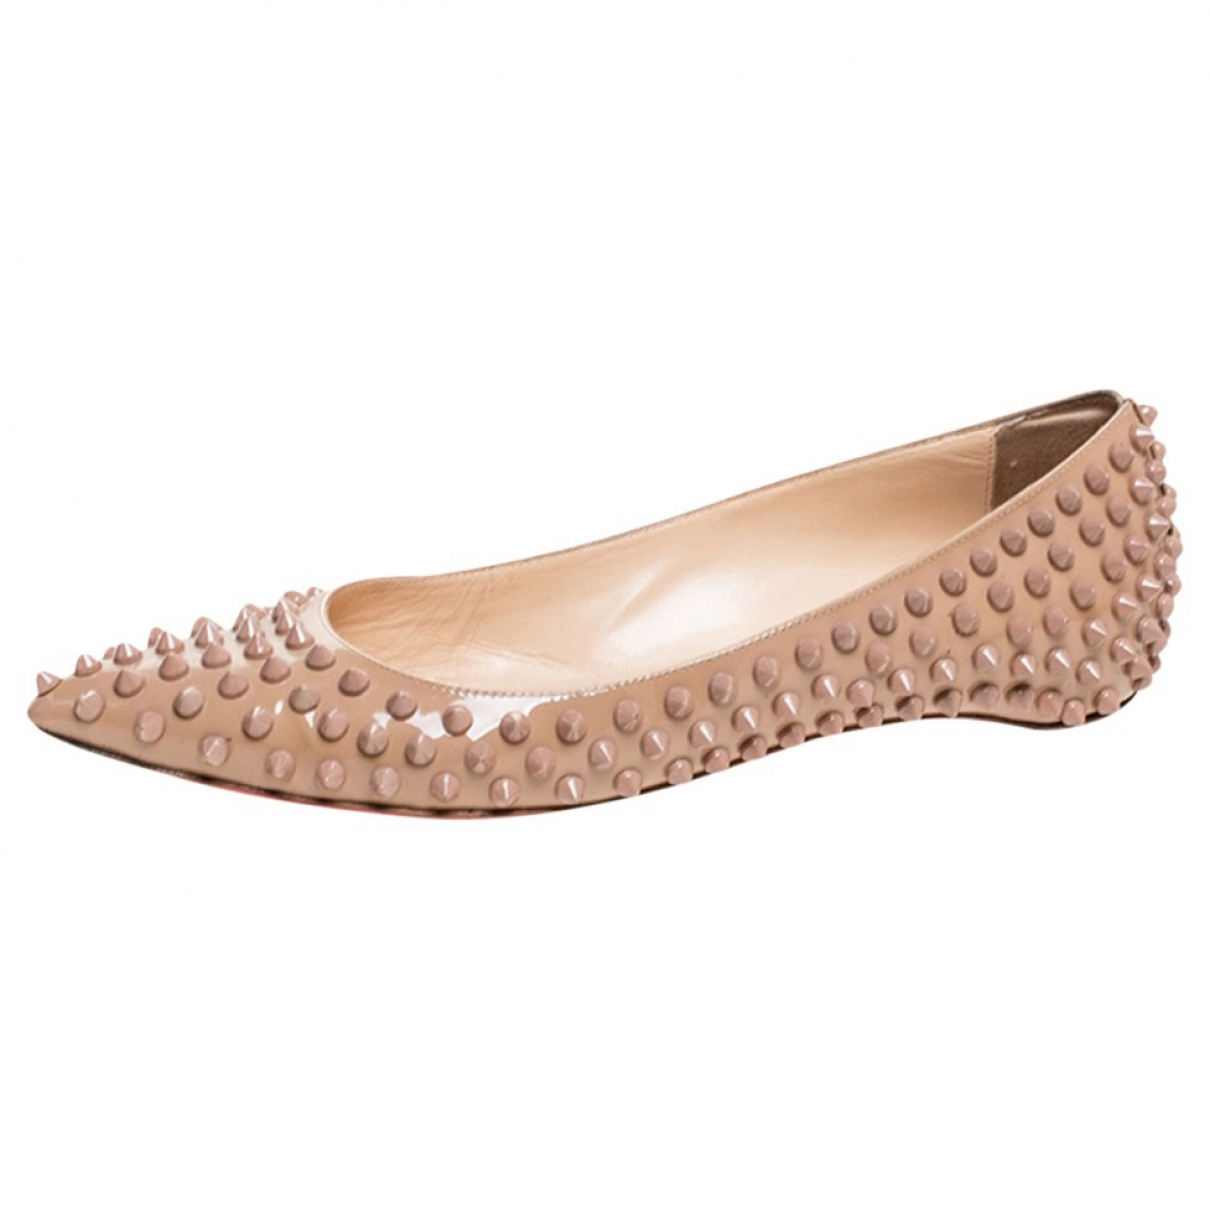 Christian Louboutin \N Beige Patent leather Ballet flats for Women 7 US